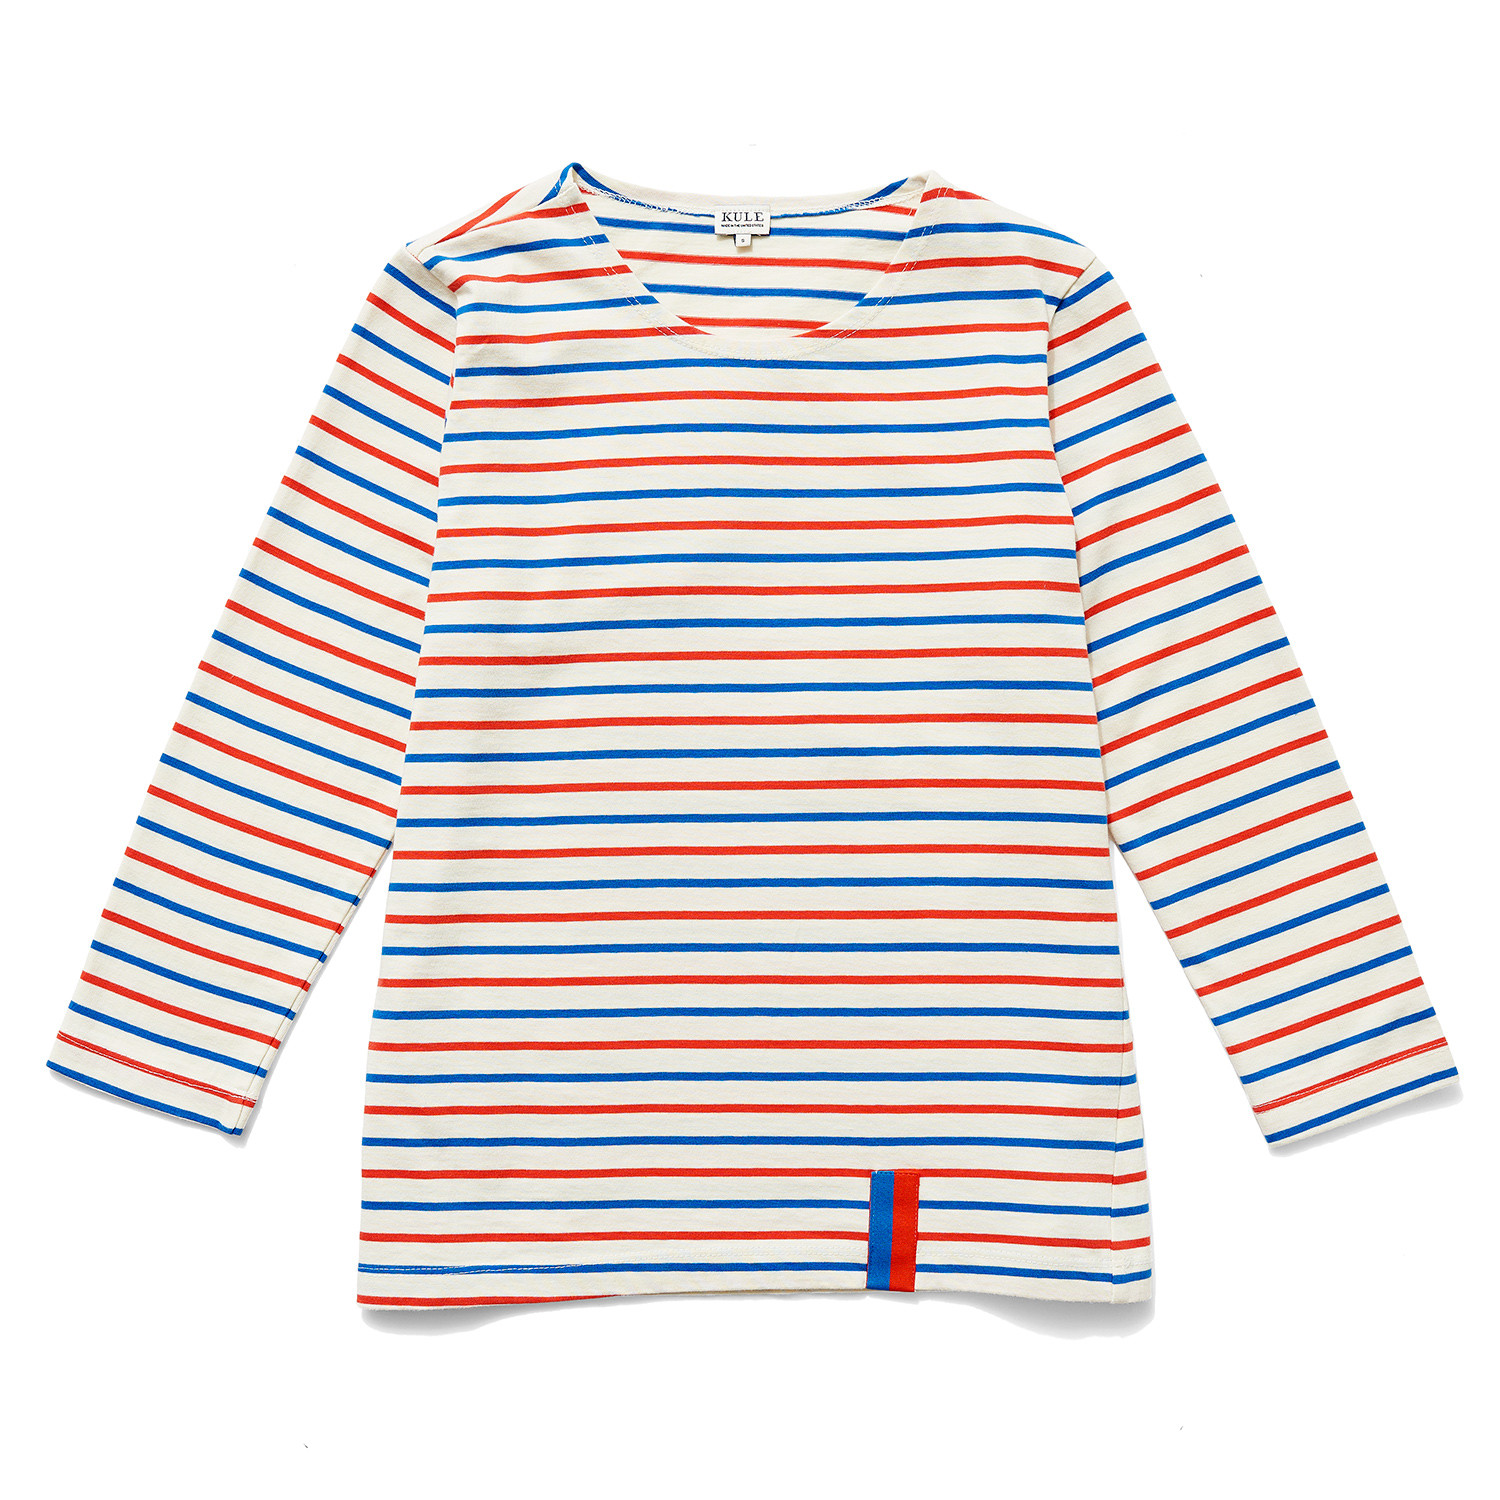 KULE  THE CLASSIC - CREAM/ROYAL BLUE/RED